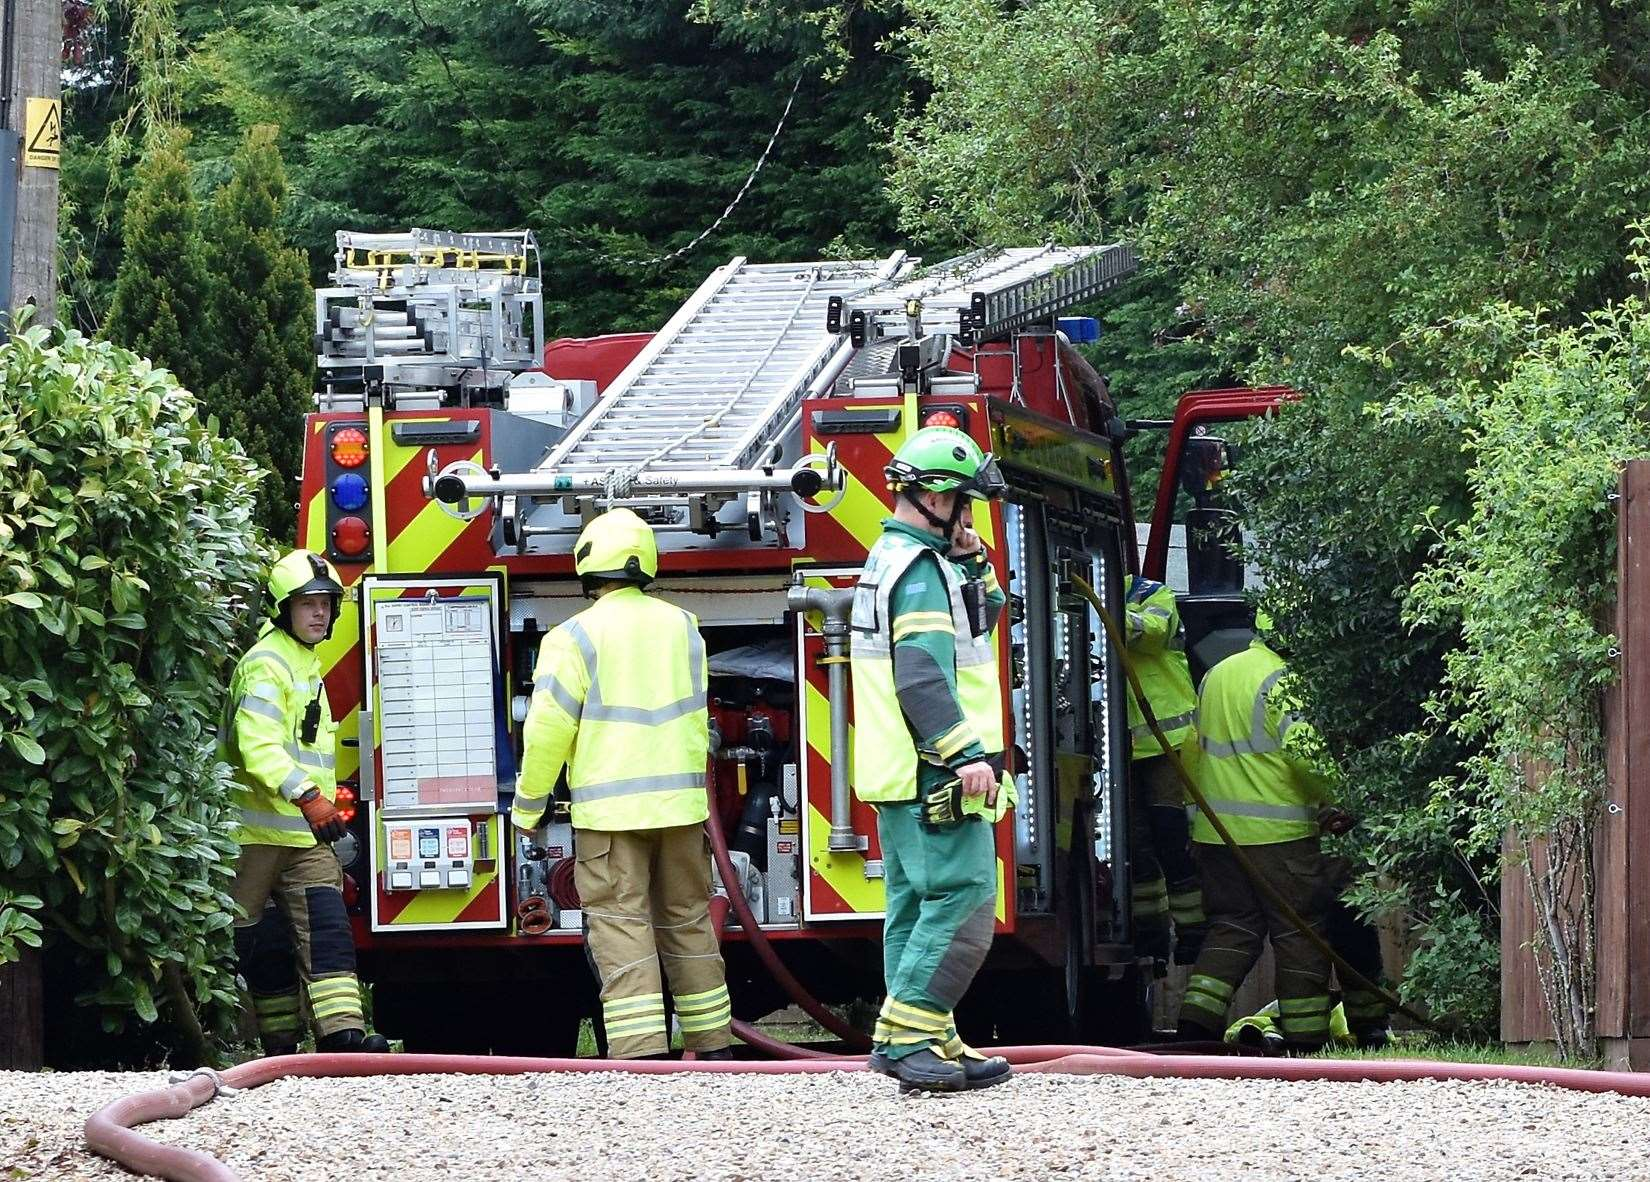 Emergency crews at scene of suspected gas explosion in Lidgate (9901787)